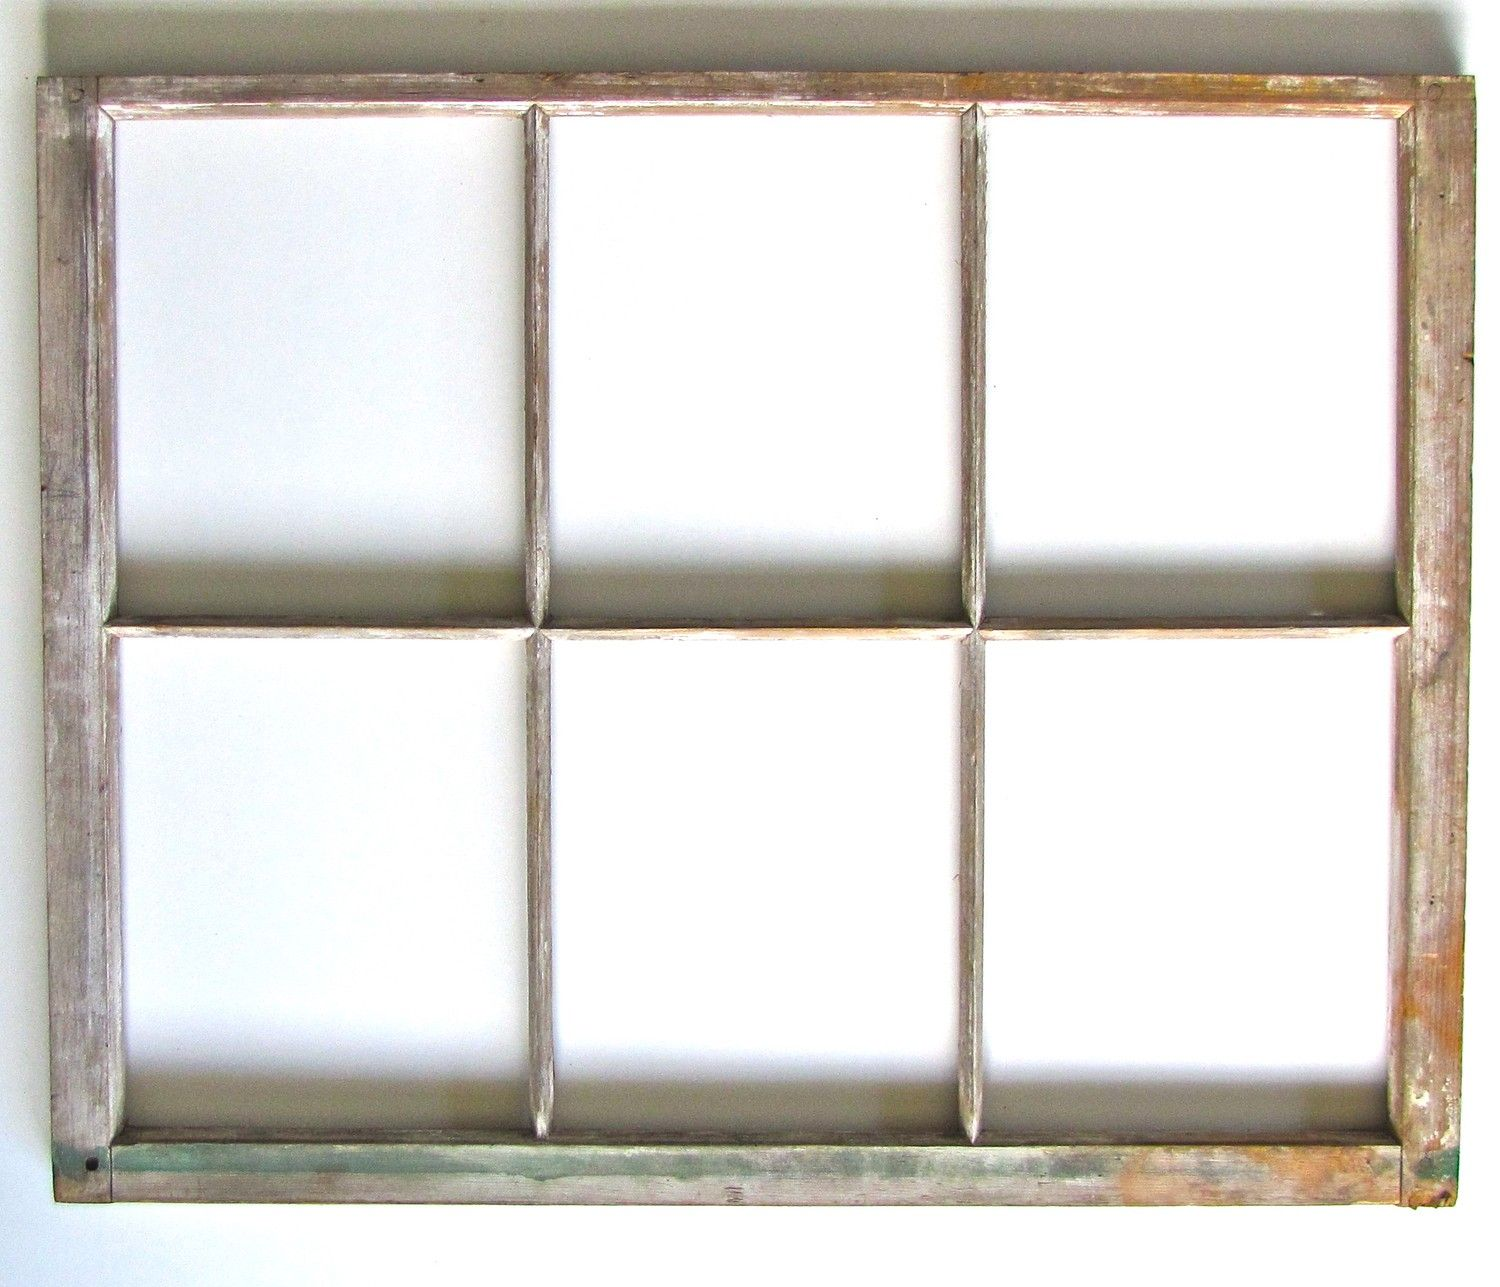 Vintage wood six pane window frame ready for mirror or for Window frame designs house design